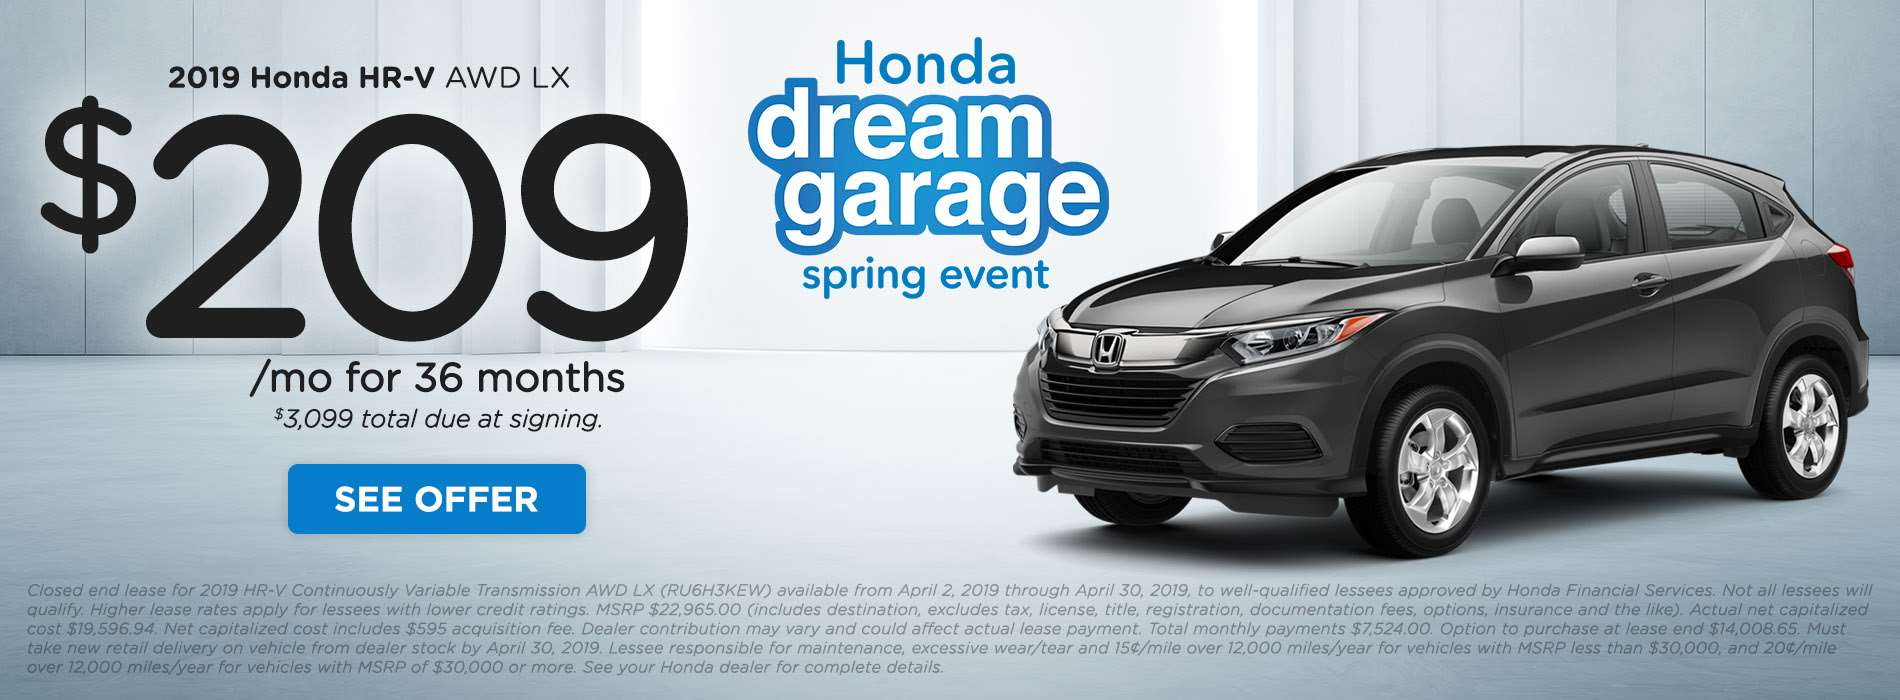 DLH - Spring Clearance HRV - Mar-Apr 2019